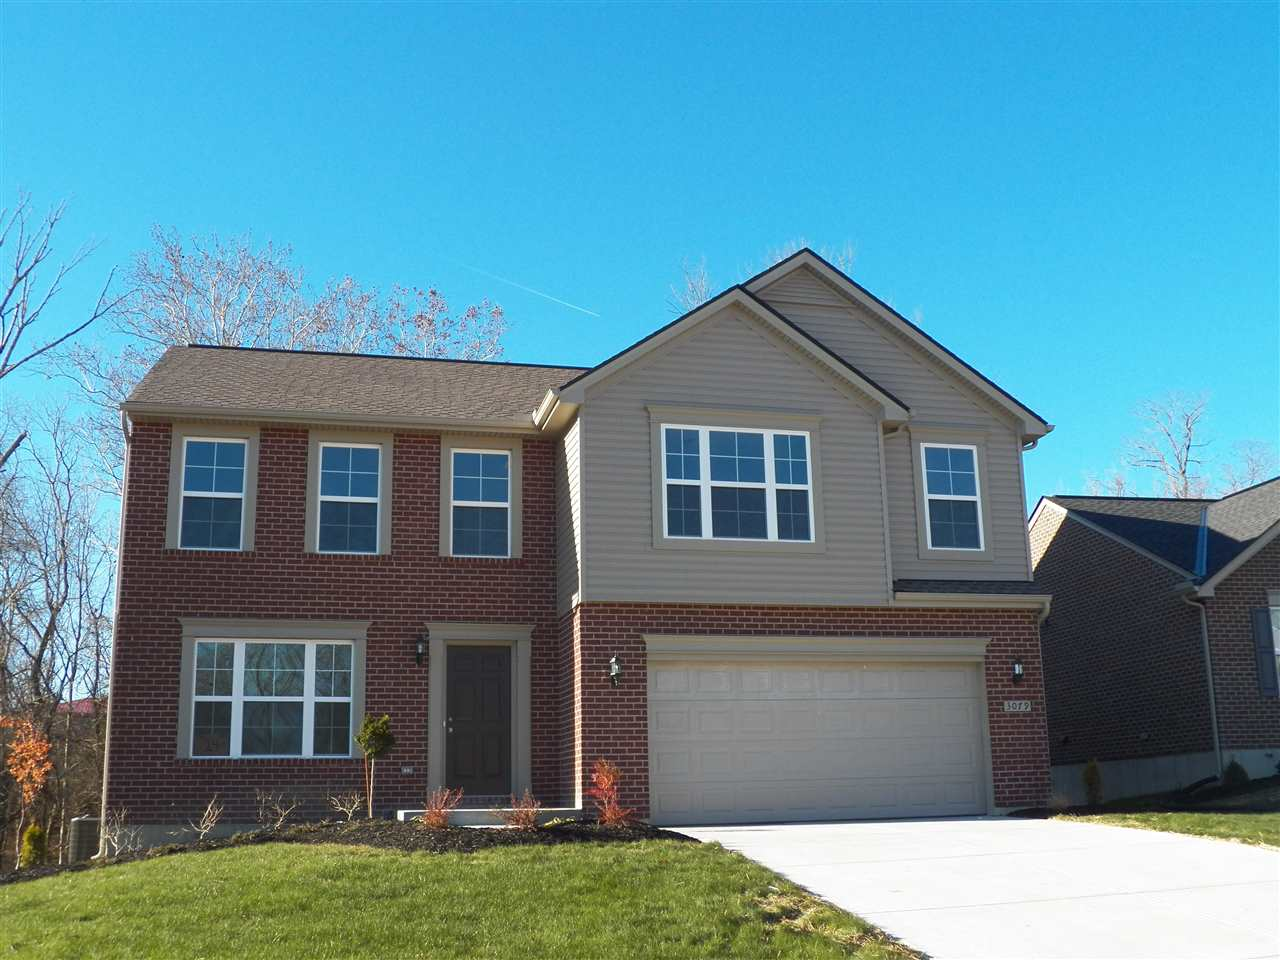 Photo 1 for 3079 Silverbell Way, 24 AL Independence, KY 41051